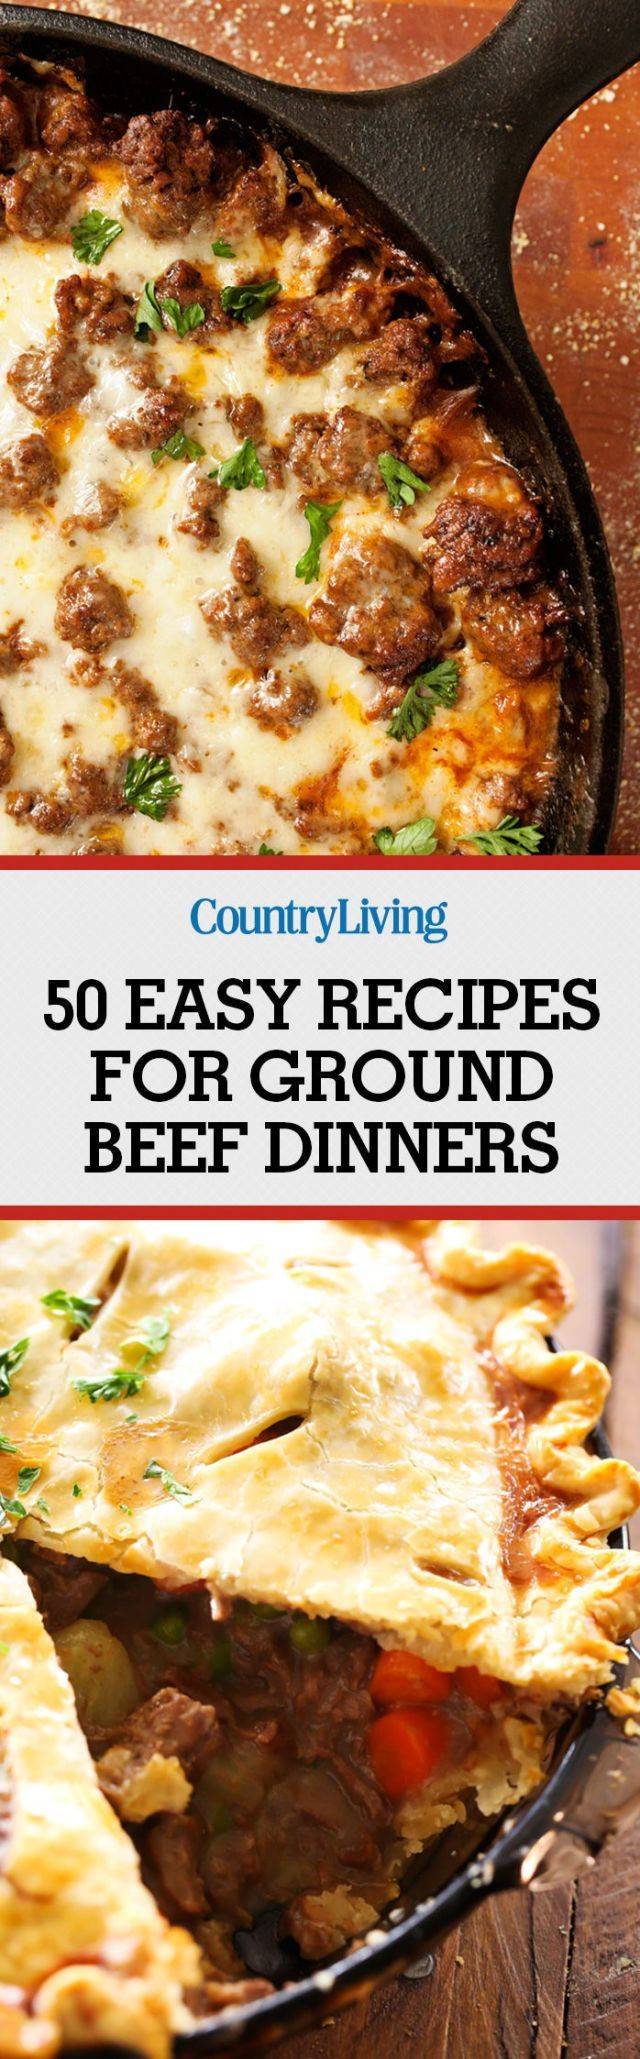 Healthy Dinner With Ground Beef  100 Ground Beef Recipes on Pinterest